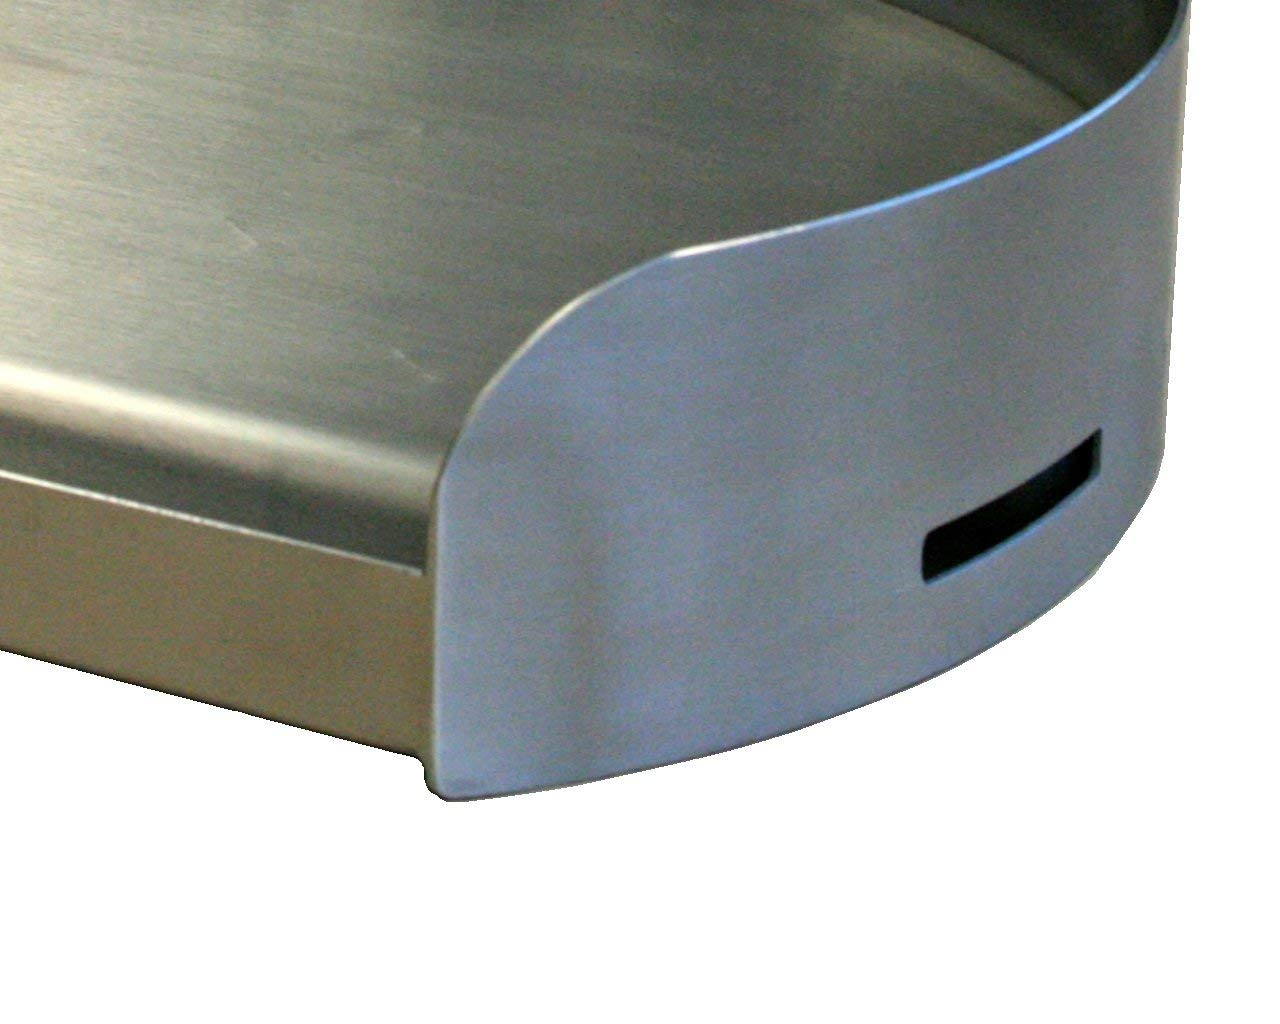 17x 14 x 3.5 inches Renewed Little Griddle KQ17R 100 Percent Stainless Steel Round Griddle with Even Heating Cross Bracing for Charcoal//Gas Grills for Round Grills more than 18 inch Diameter